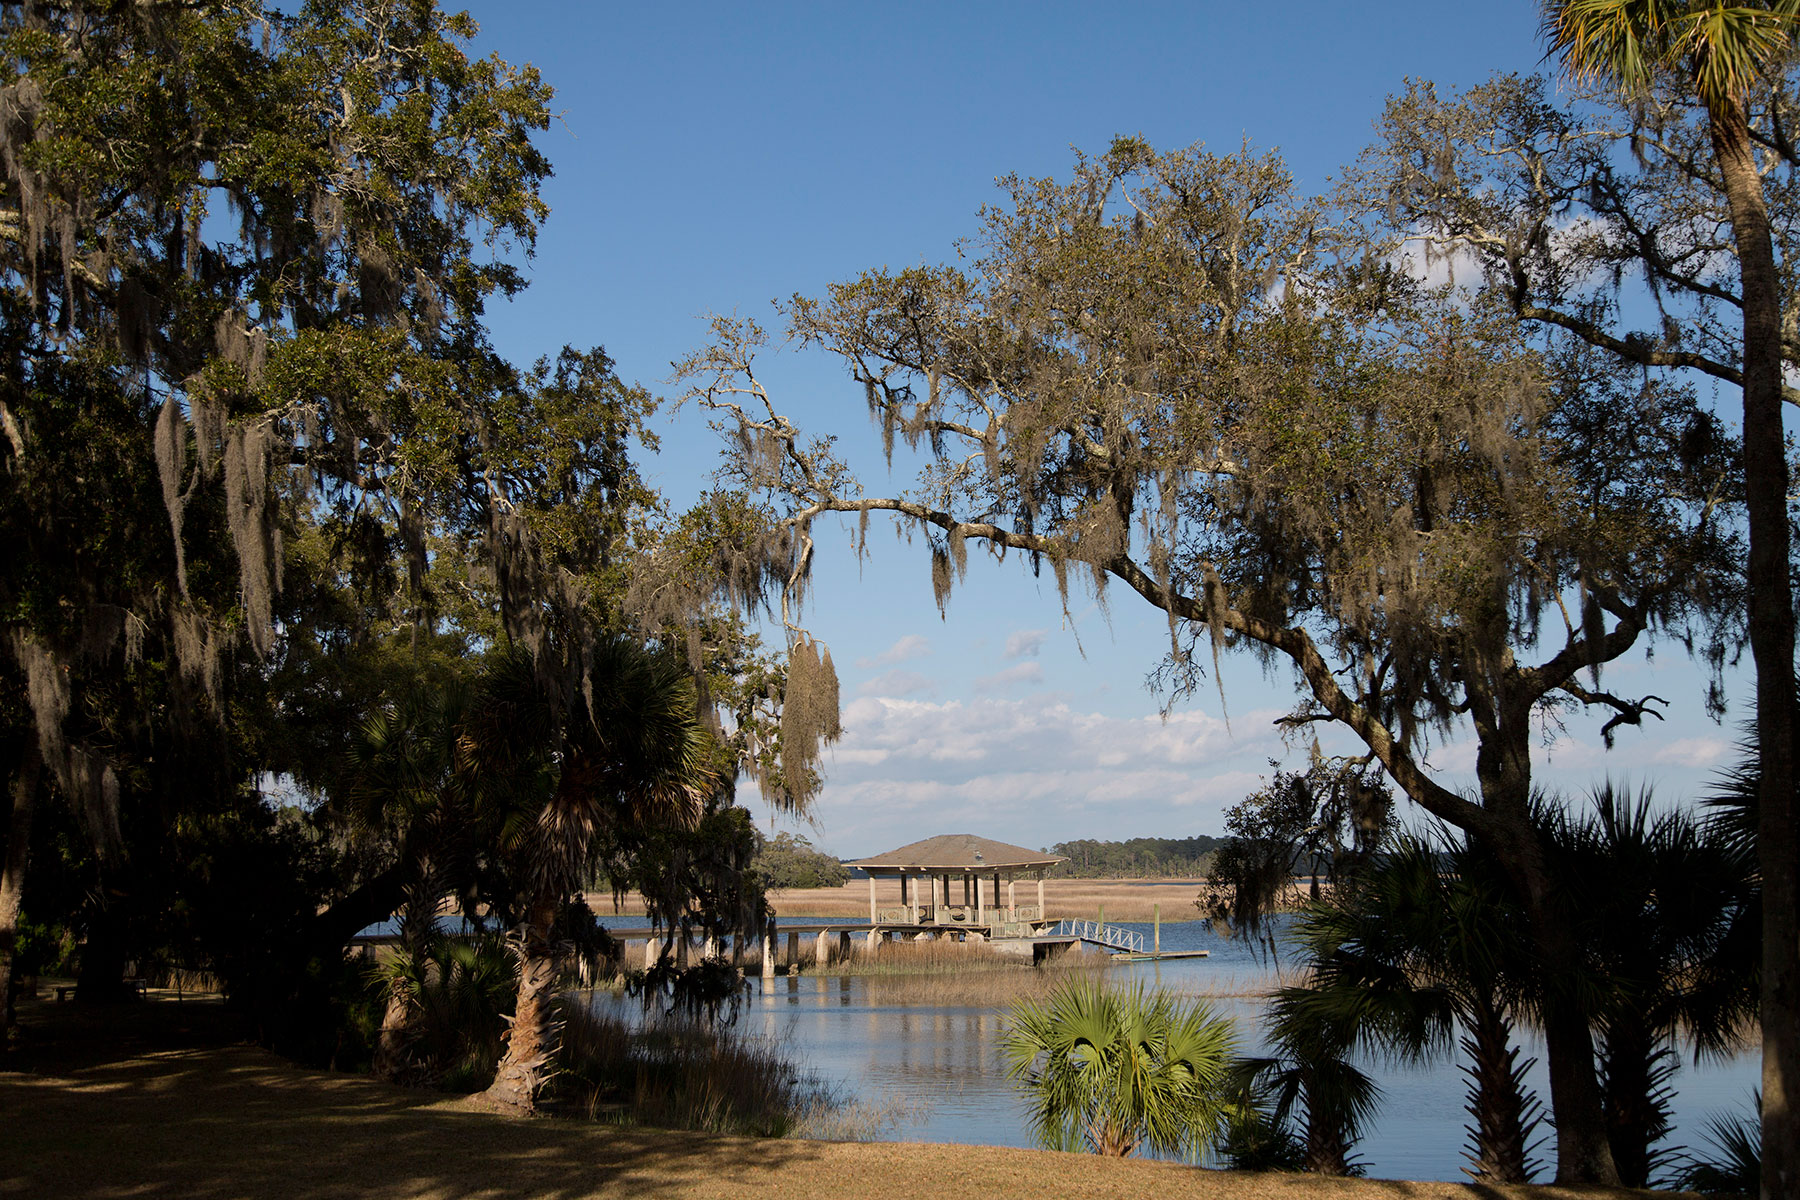 Wormsloe-Landscape-with-Water